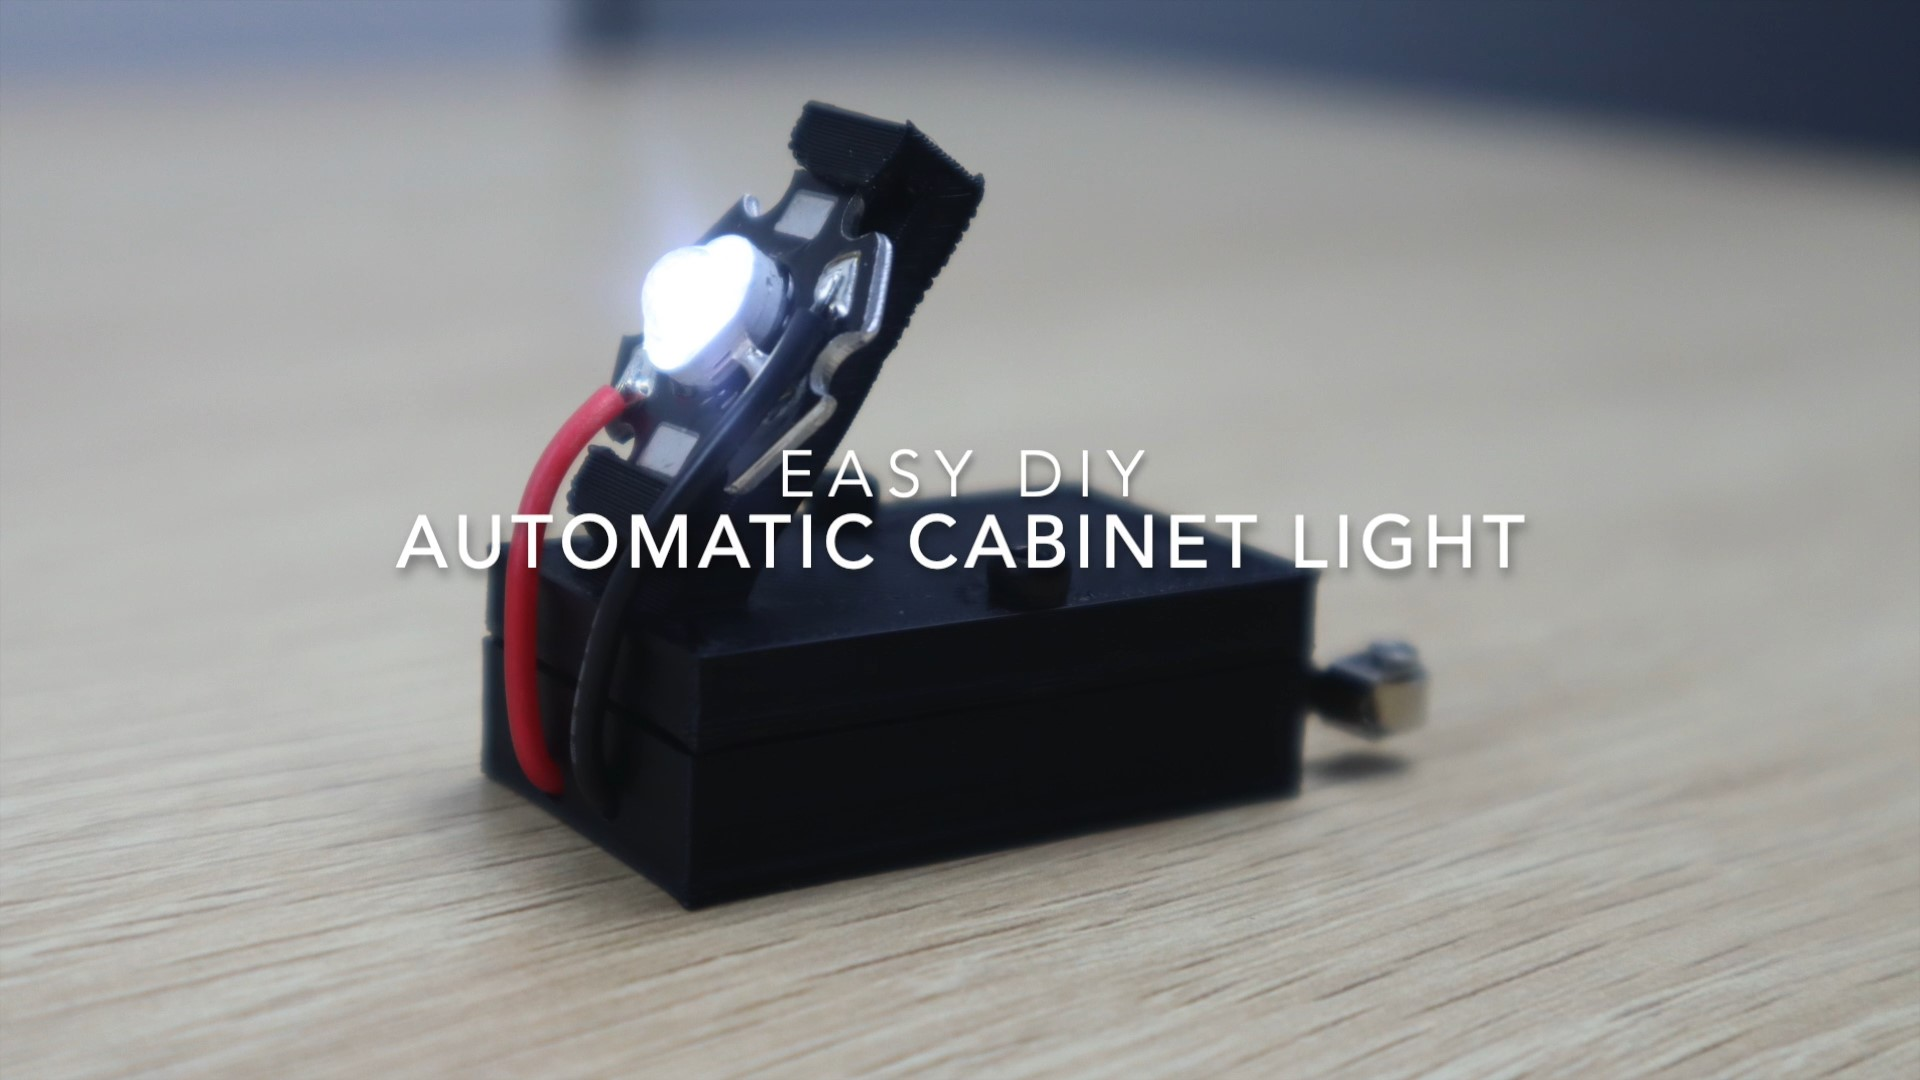 Easy DIY Automatic Cabinet Light